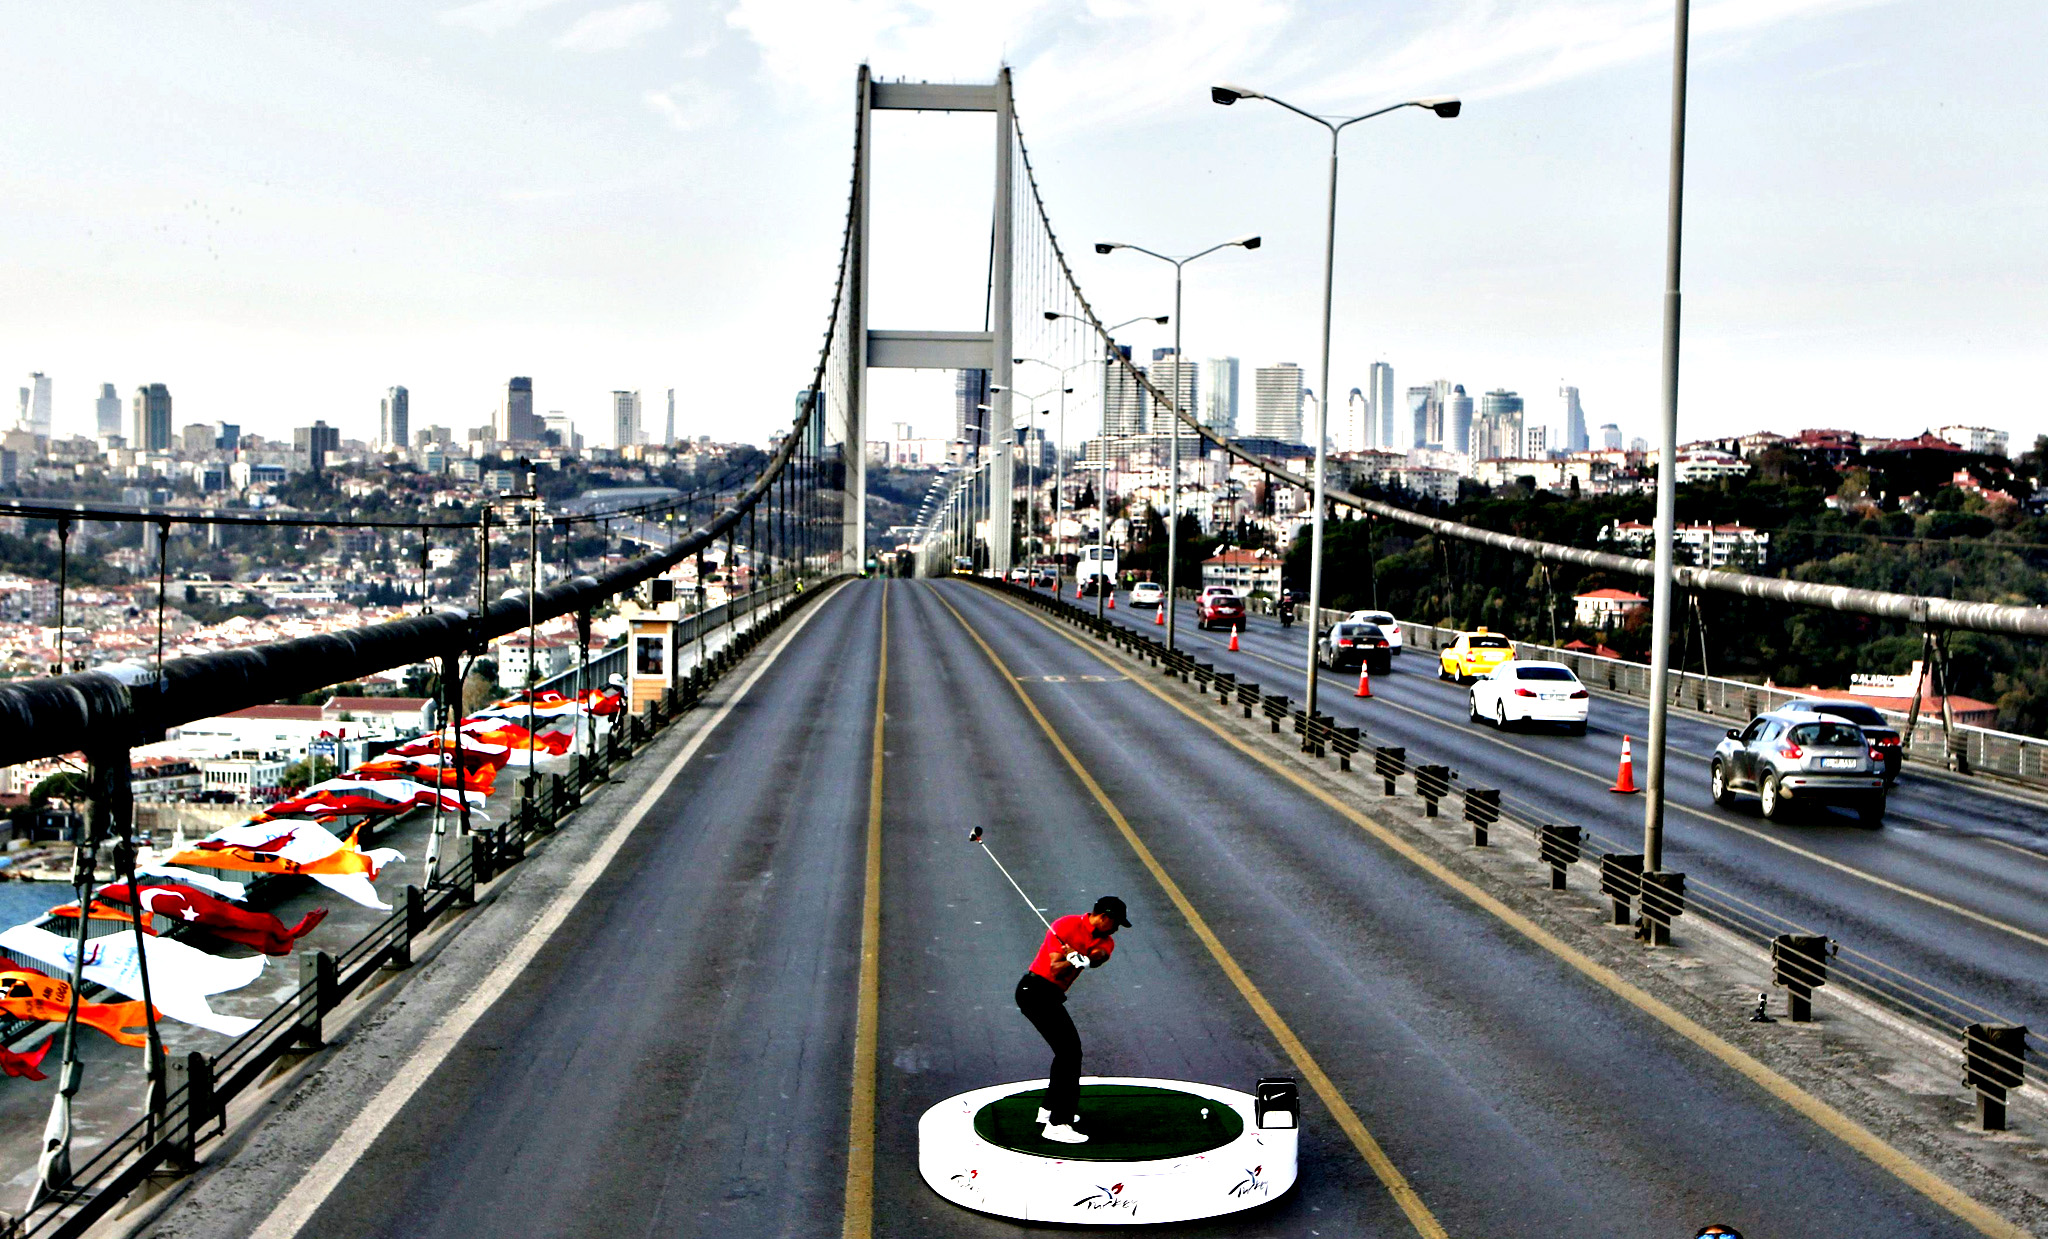 U.S. golfer Tiger Woods hits a shot during an event to promote the upcoming Turkish Airlines Open golf tournament, on the Bosphorus Bridge that links the city's European and Asian sides, in Istanbul November 5, 2013. Woods is in Turkey to attend the tournament, which will take place in Antalya, southern Turkey, between November 7 to 10.